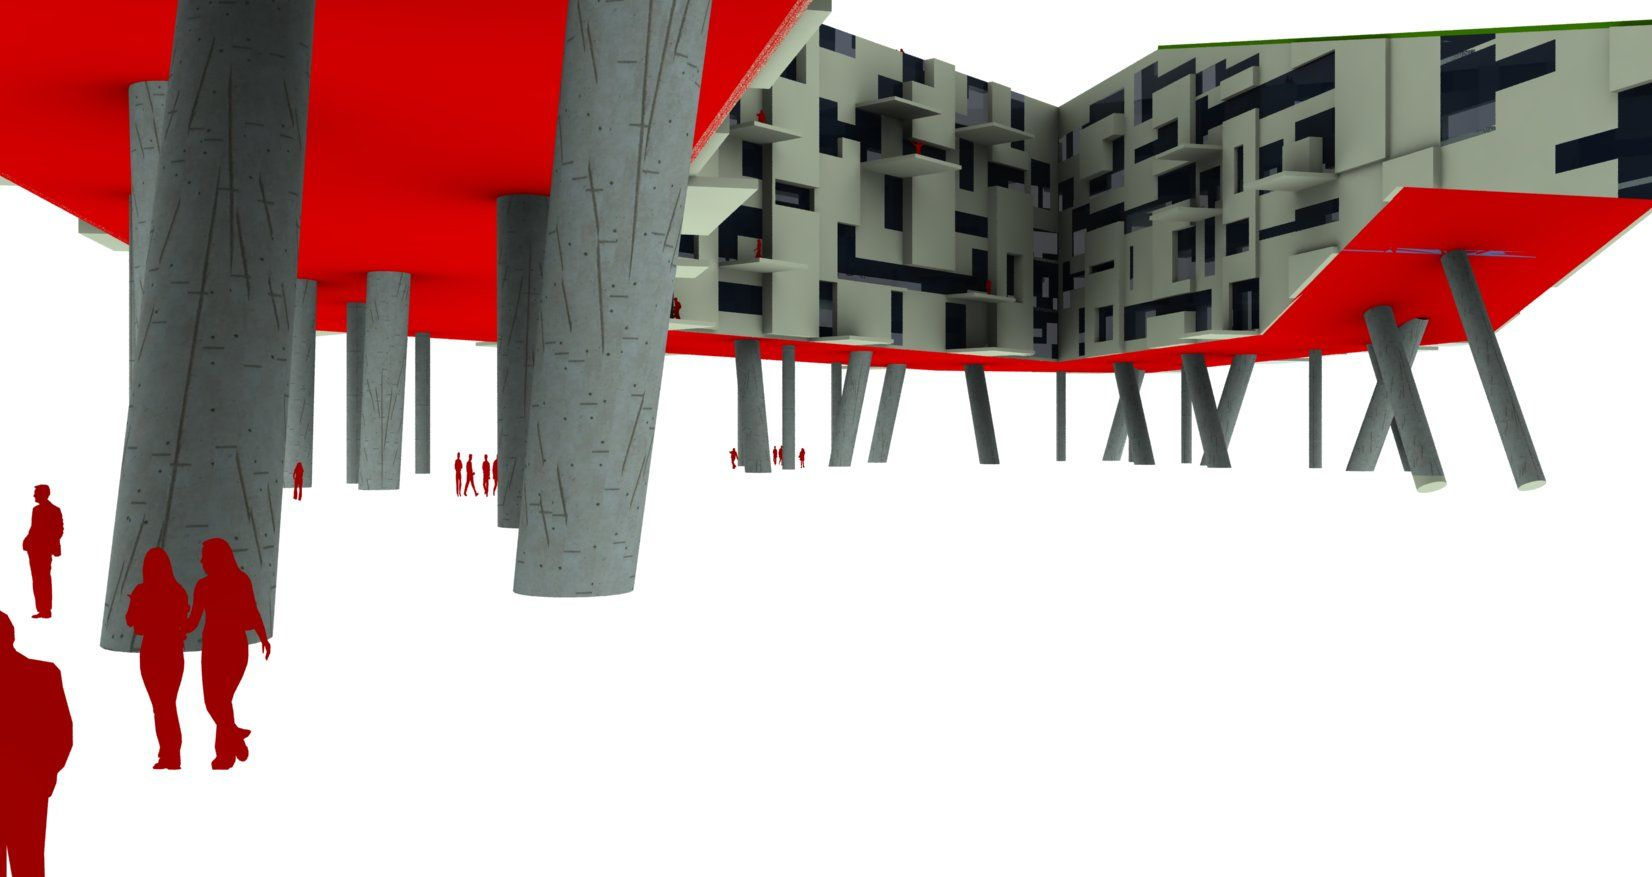 Proposed luxury housing for the Miami Civic Center Competition (2010)